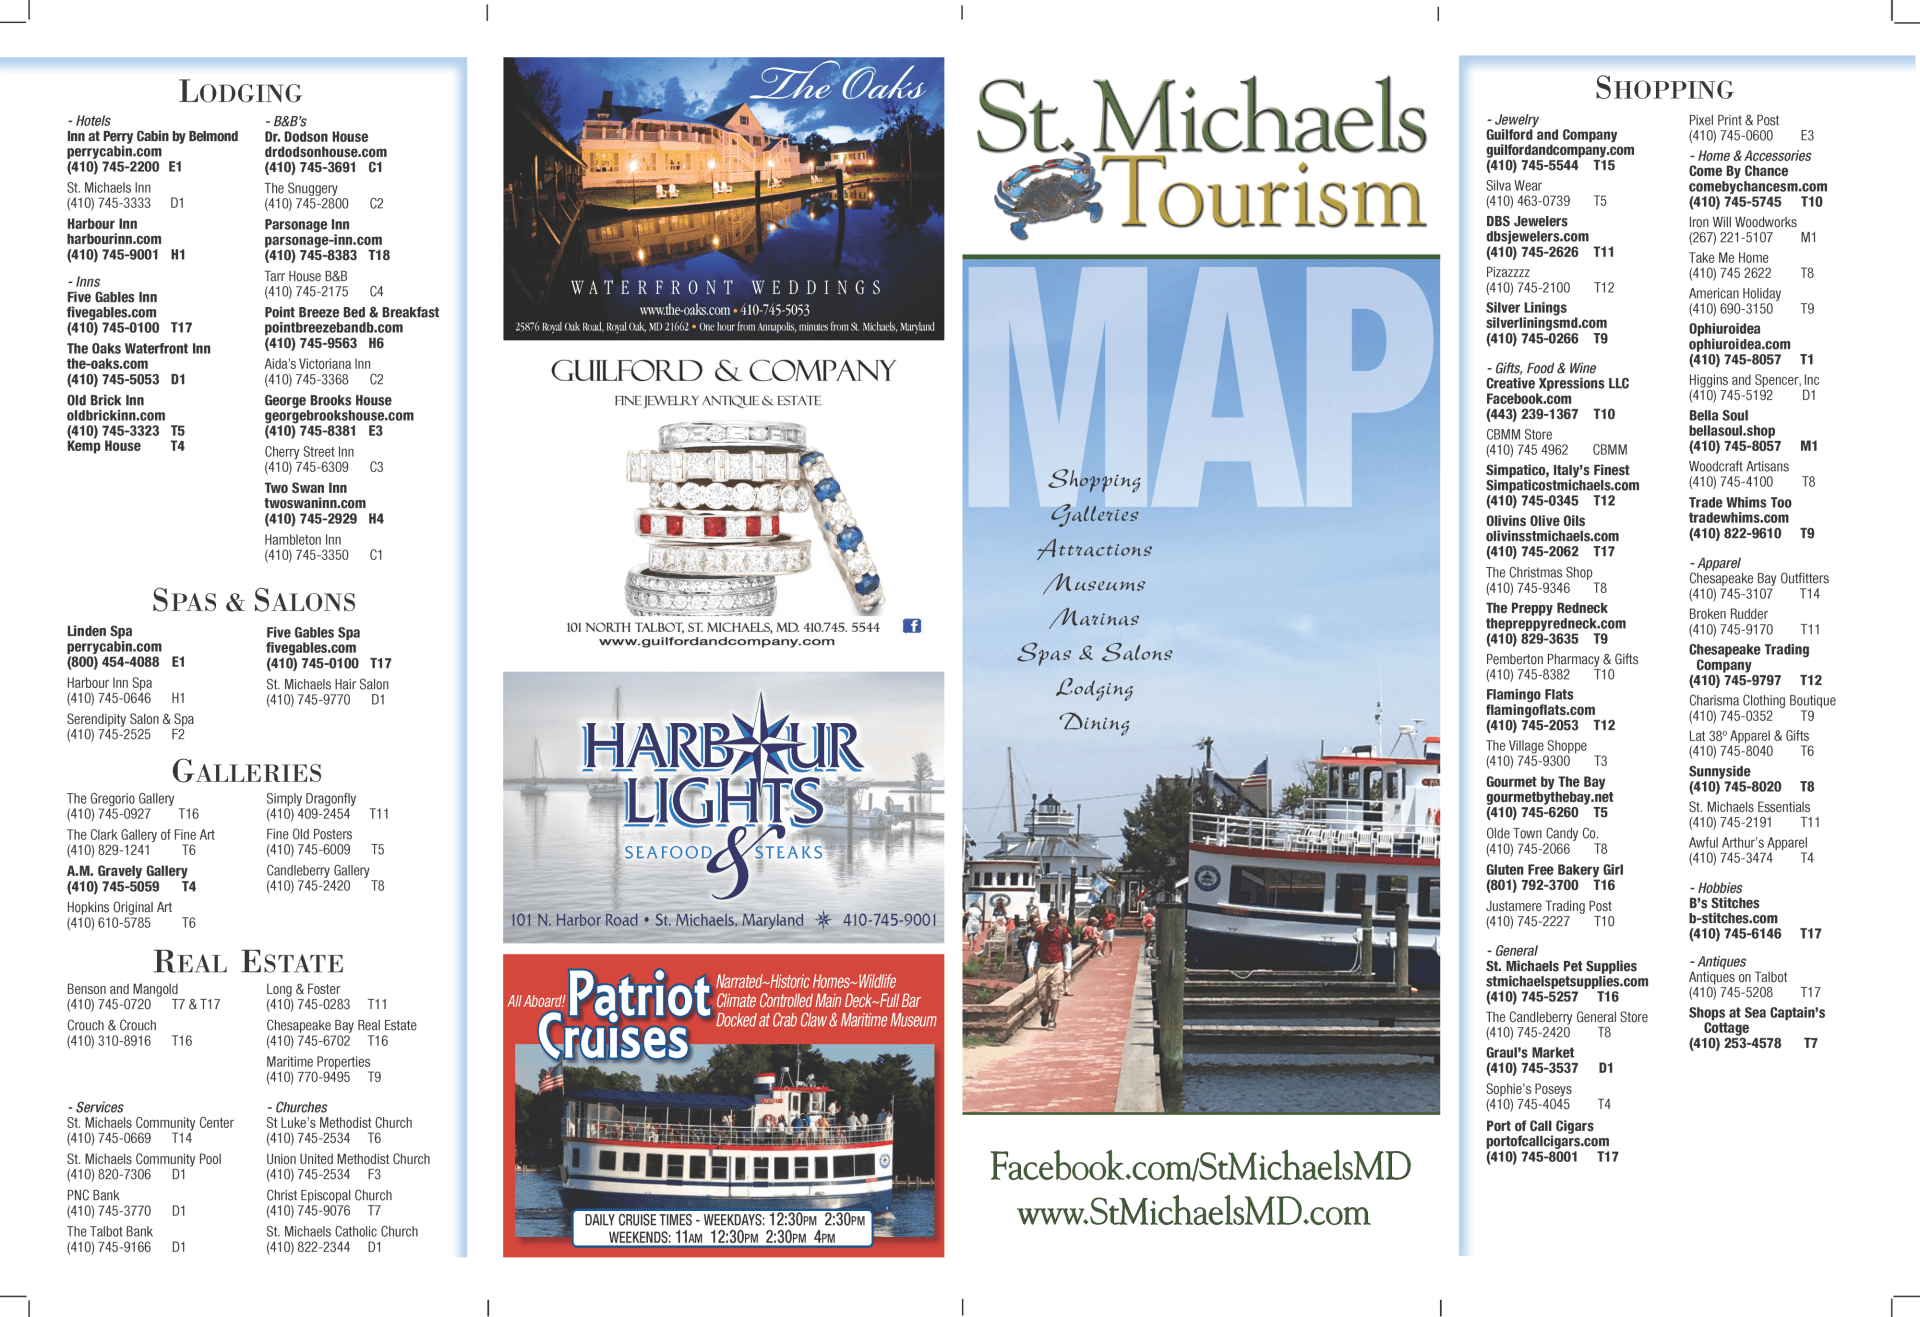 Map of St  Michaels - St  Michaels Tourism, MD